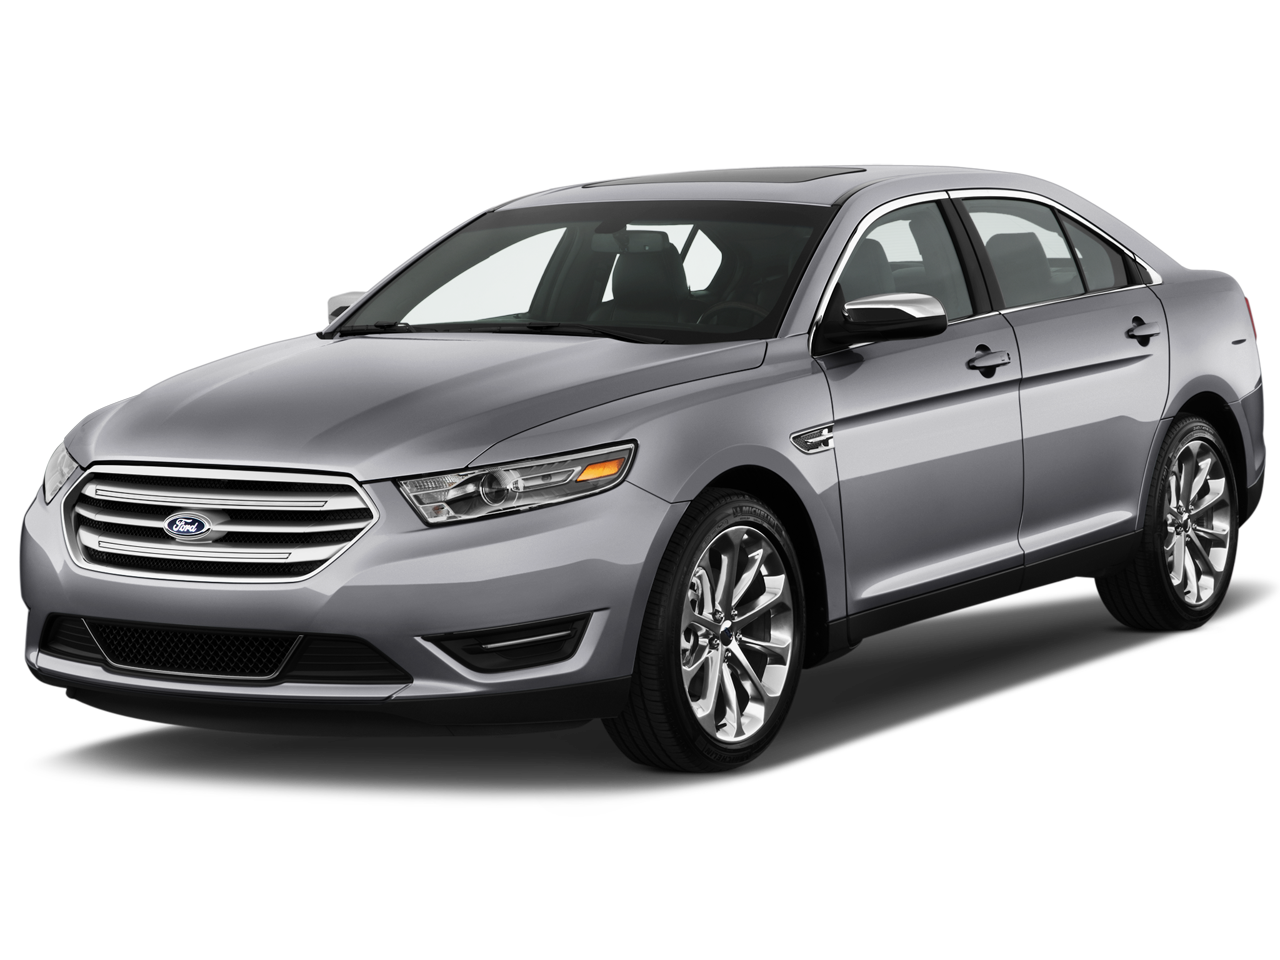 new 2016 ford taurus limited near joliet il auto mall. Black Bedroom Furniture Sets. Home Design Ideas